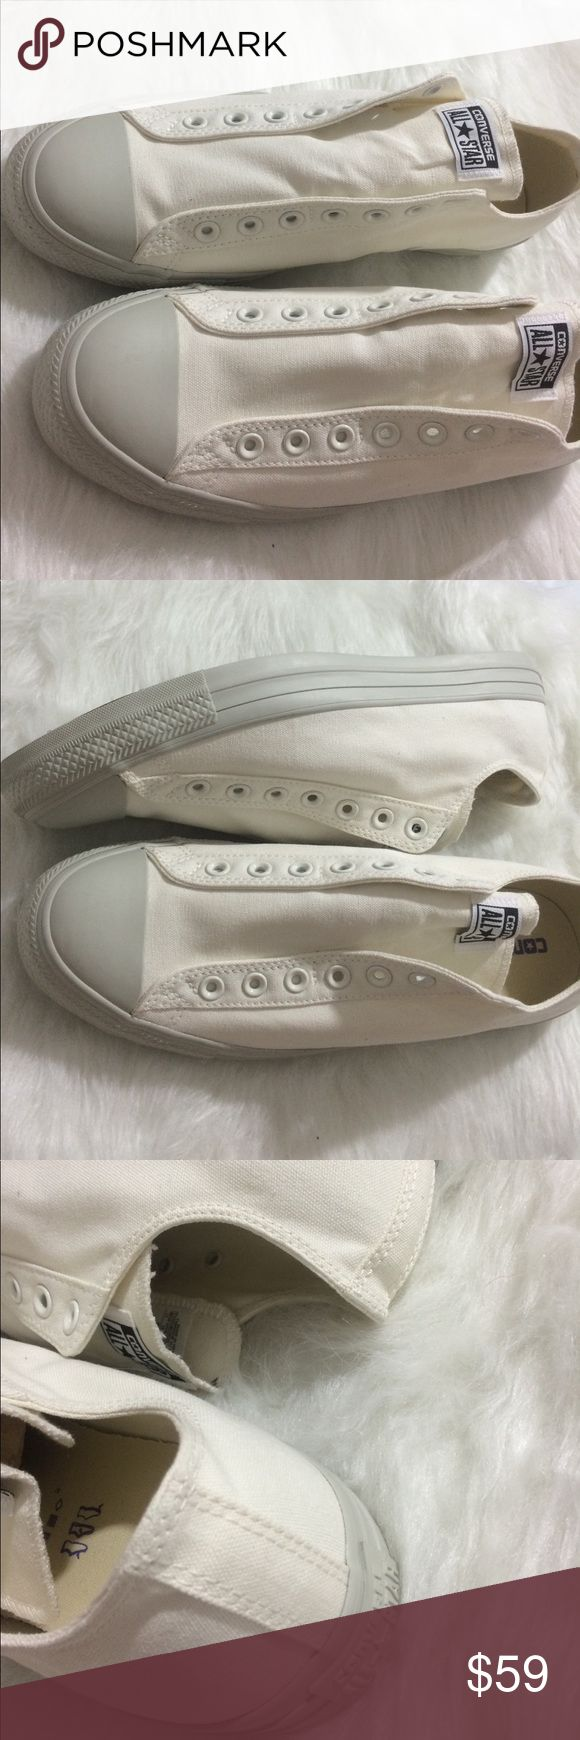 🇺🇸SALE❗️Converse slip on Mens size 11 shoes Brand new without box. Size 11. Customized on the converse website. One of a kind. Ships same day or very next. ✨ Converse Shoes Sneakers